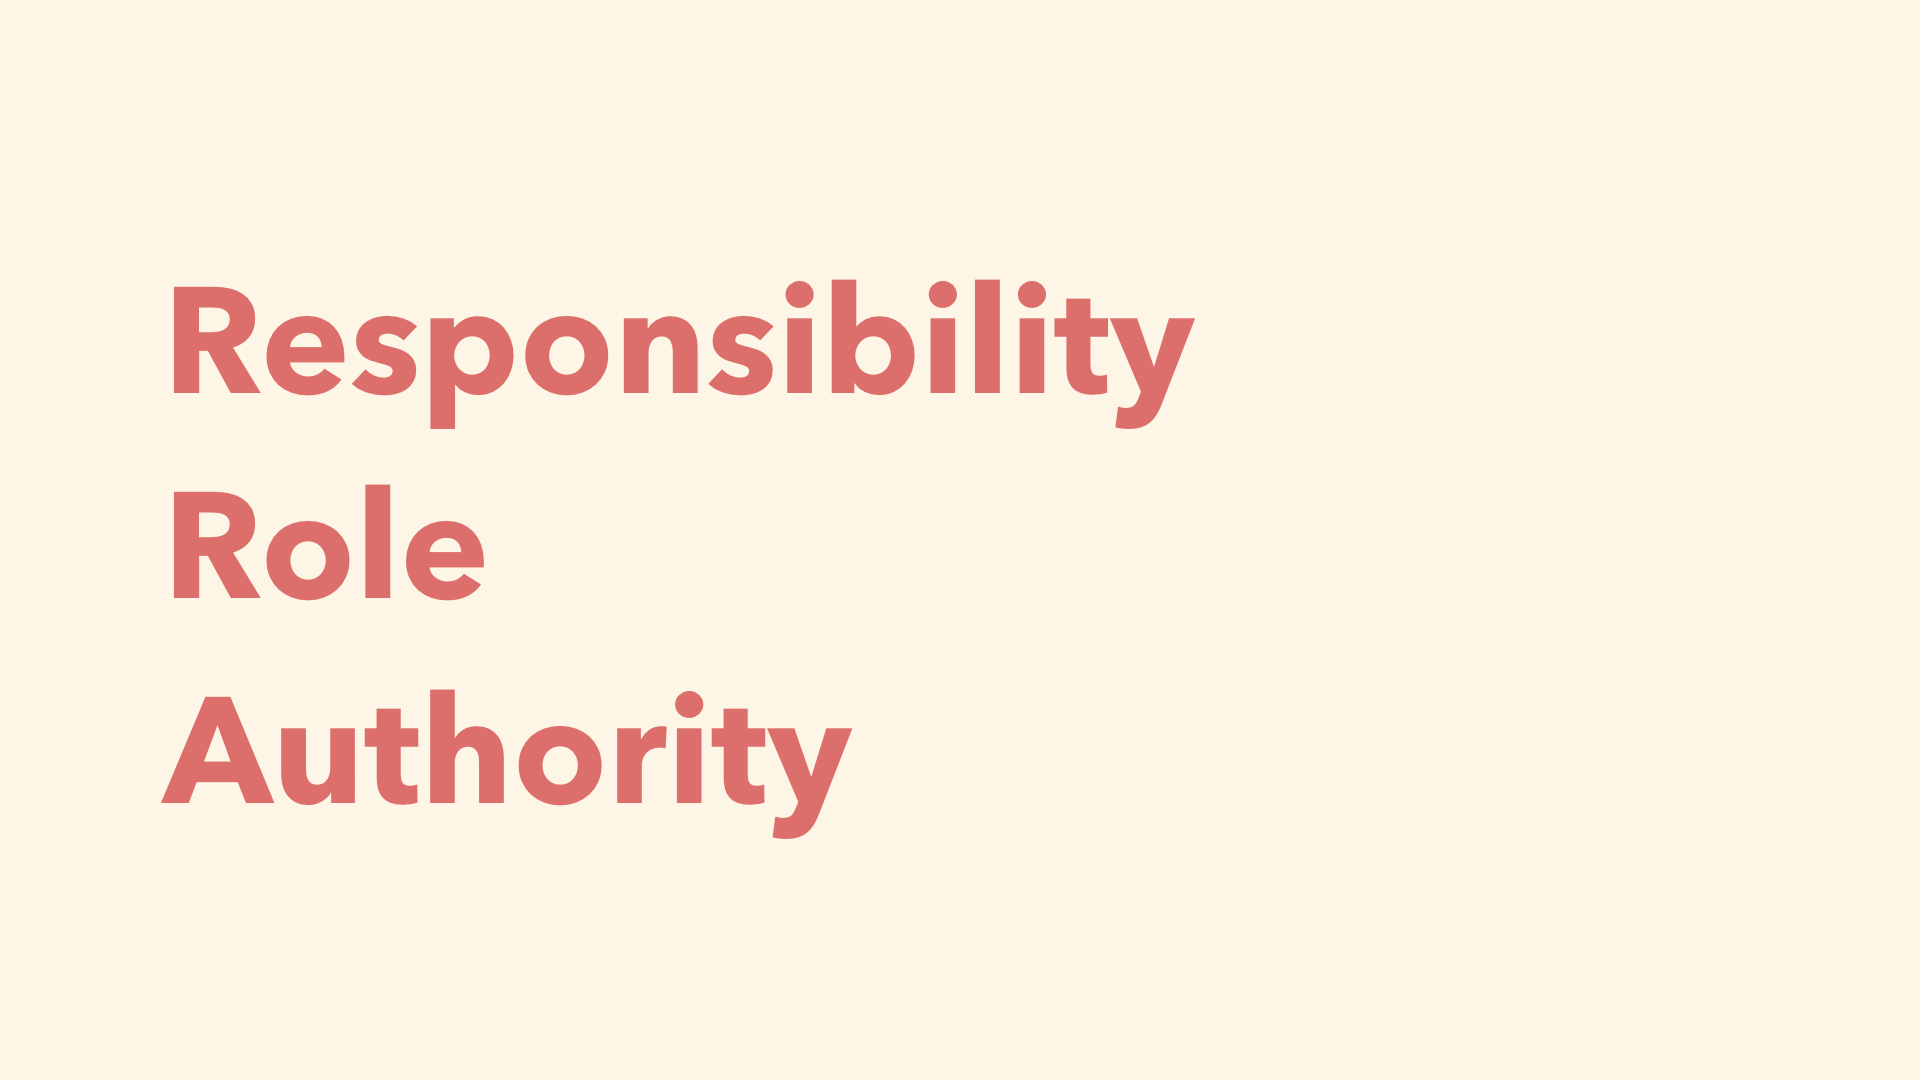 Responsibility Role Authority